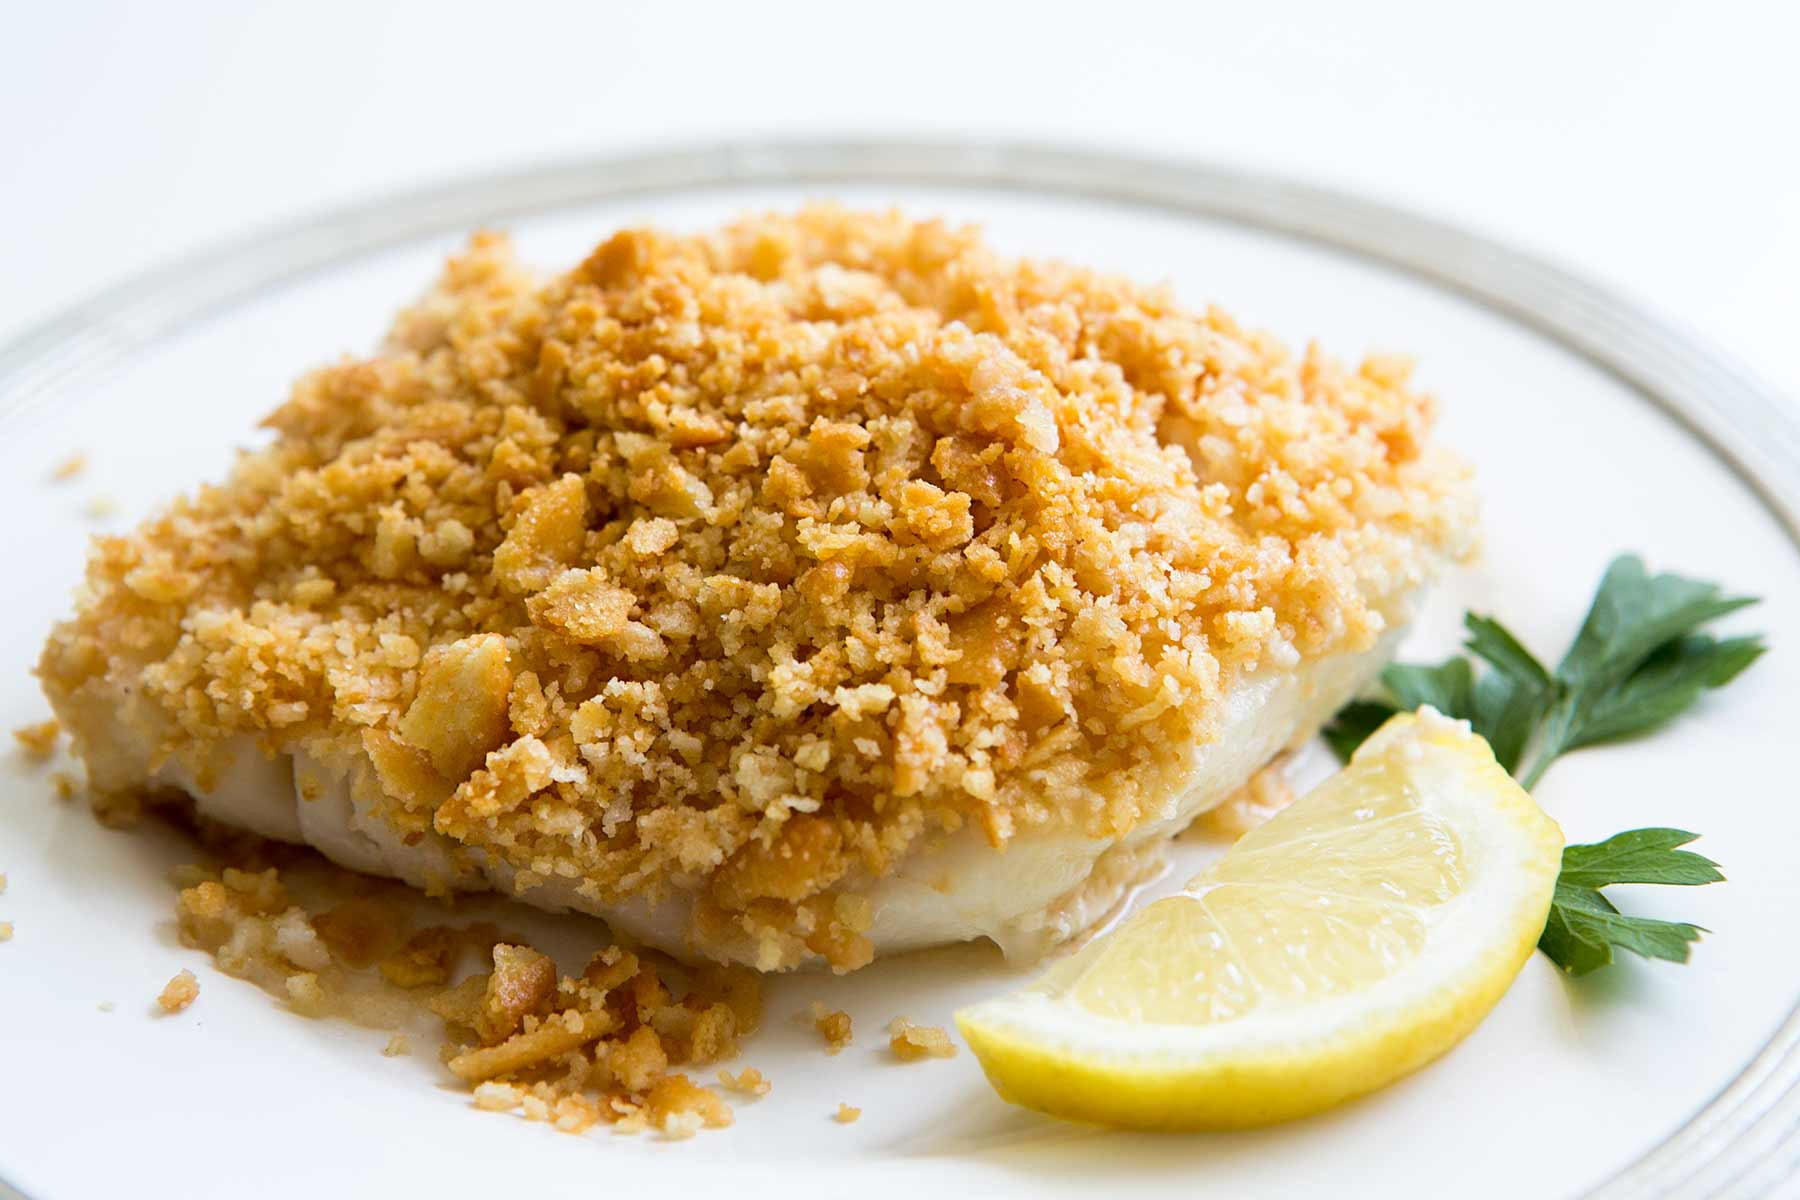 Bread Crumbs Recipe  baked cod fish recipes with bread crumbs